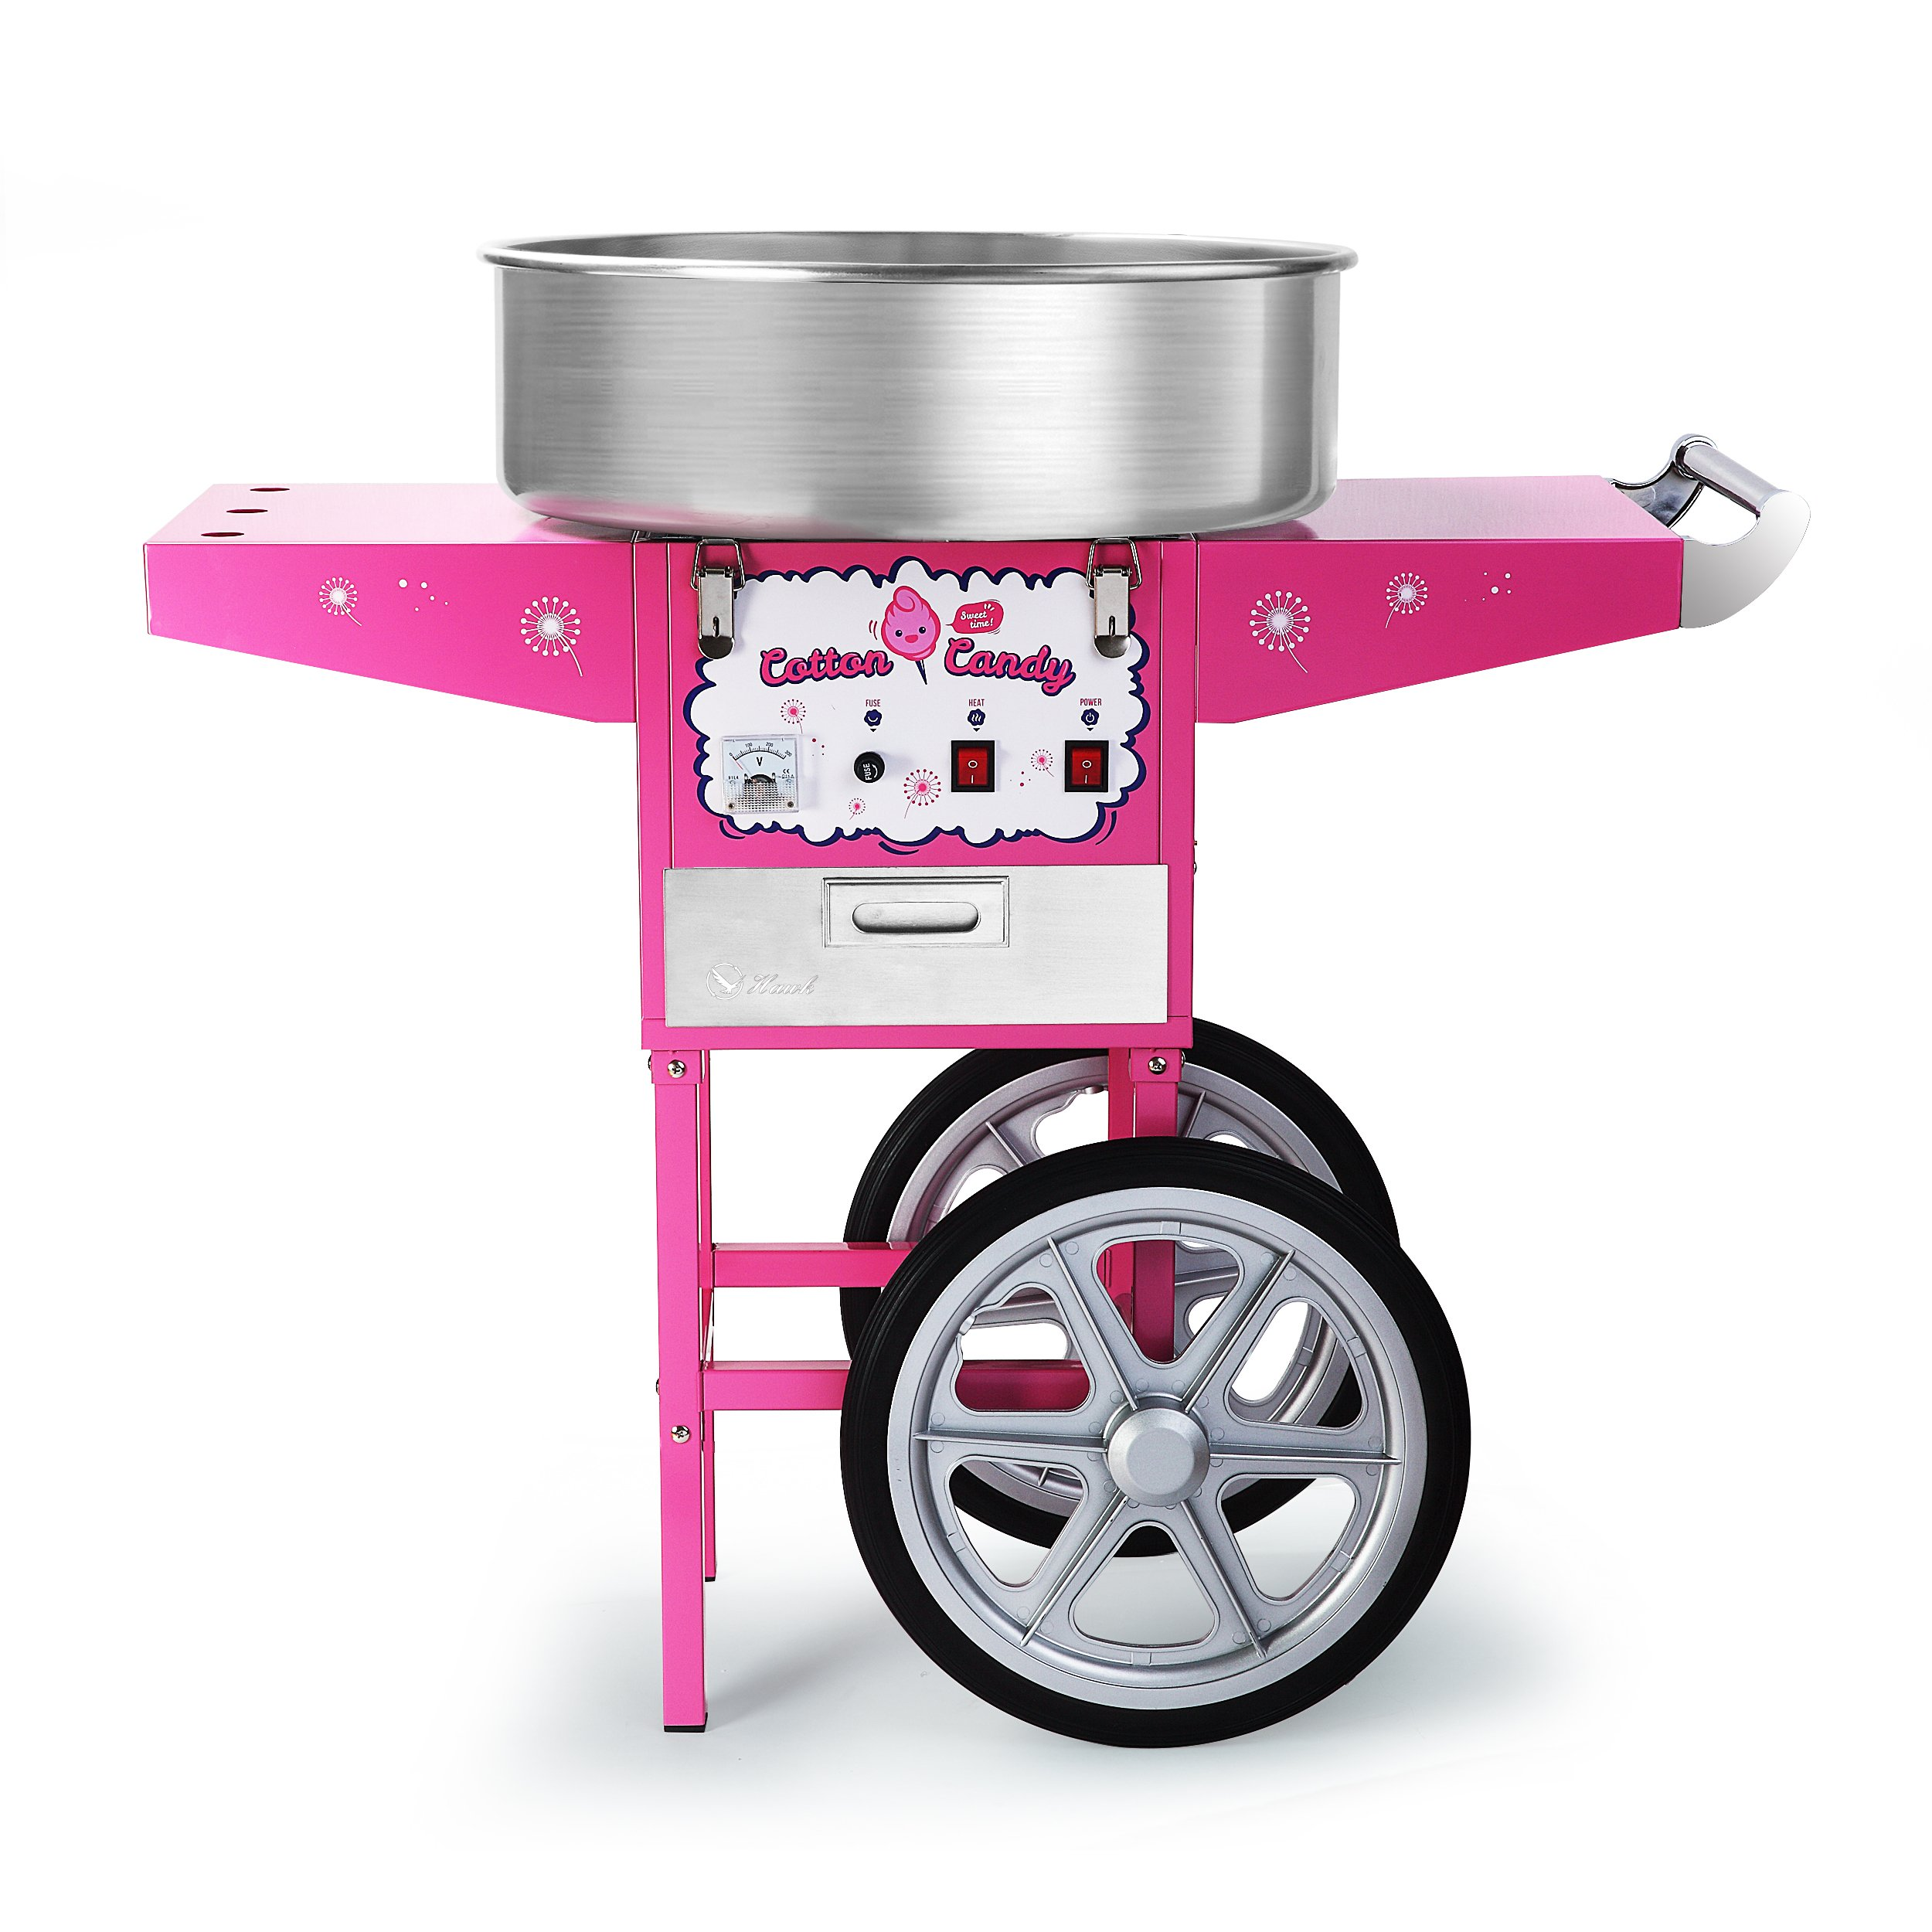 HAWK COMMERCIAL QUALITY COTTON CANDY MACHINE CART AND ELECTRIC CANDY FLOSS MAKER